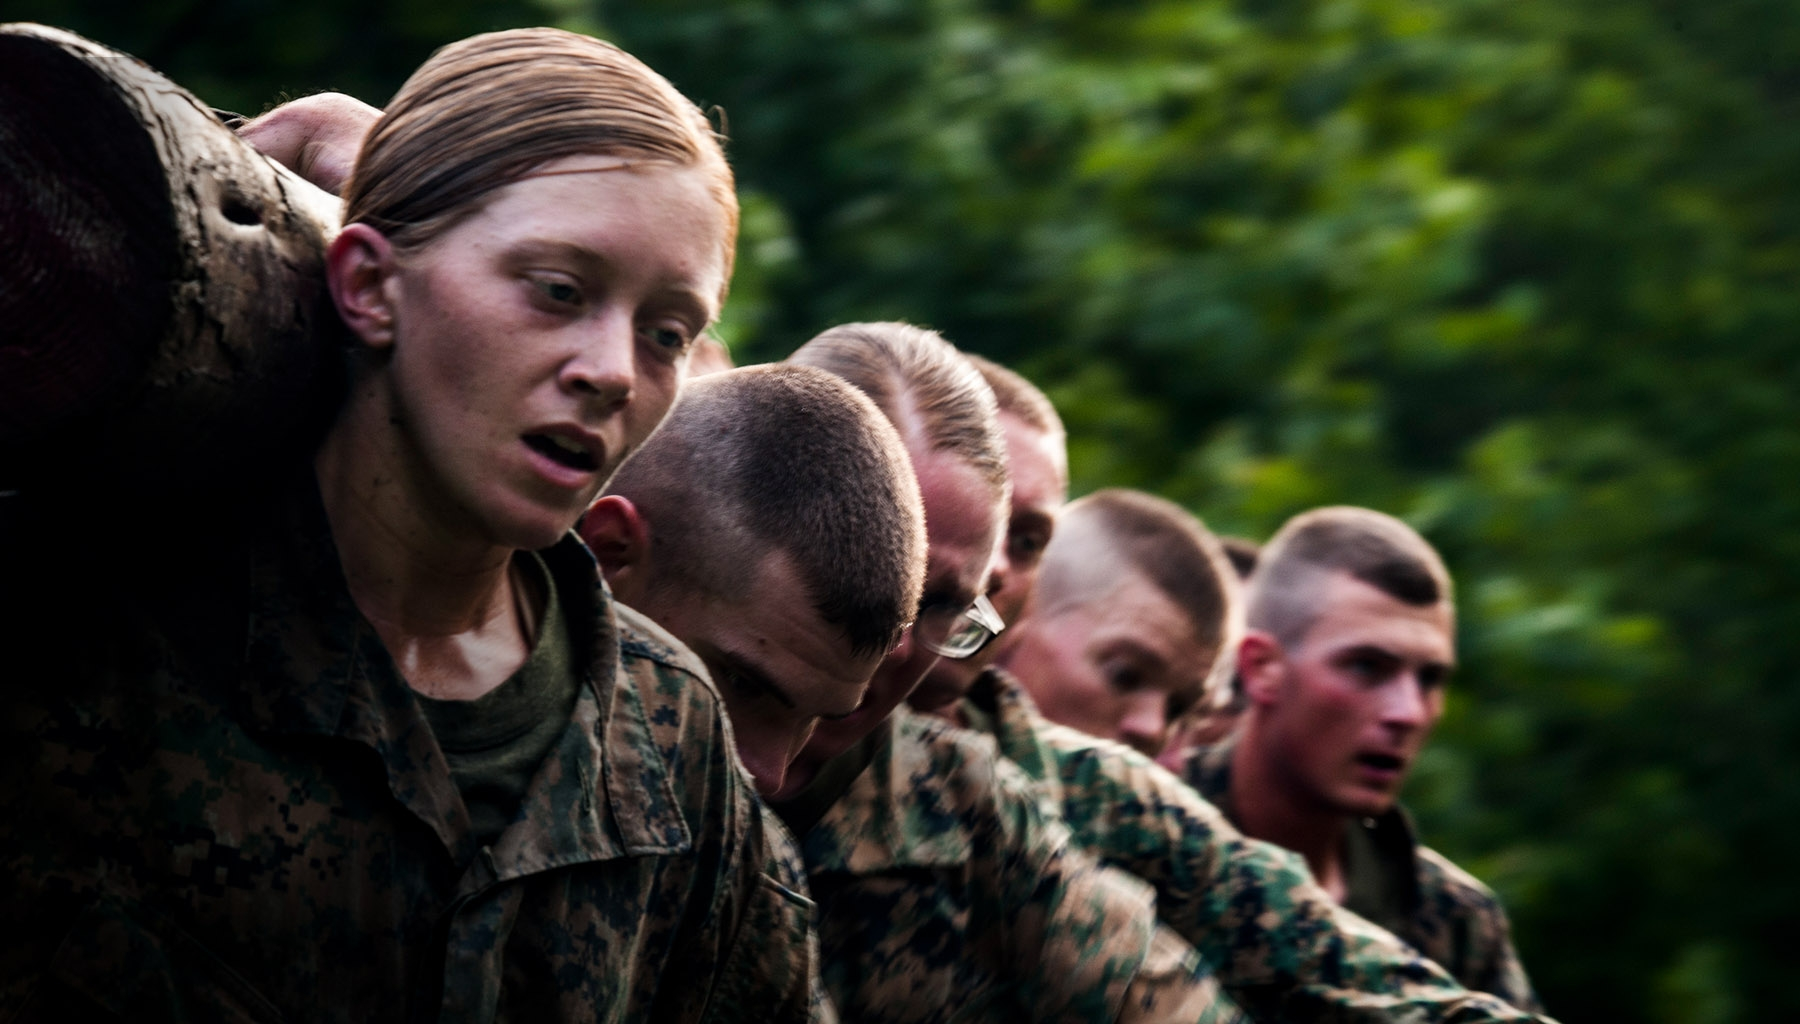 Marine Officer Training